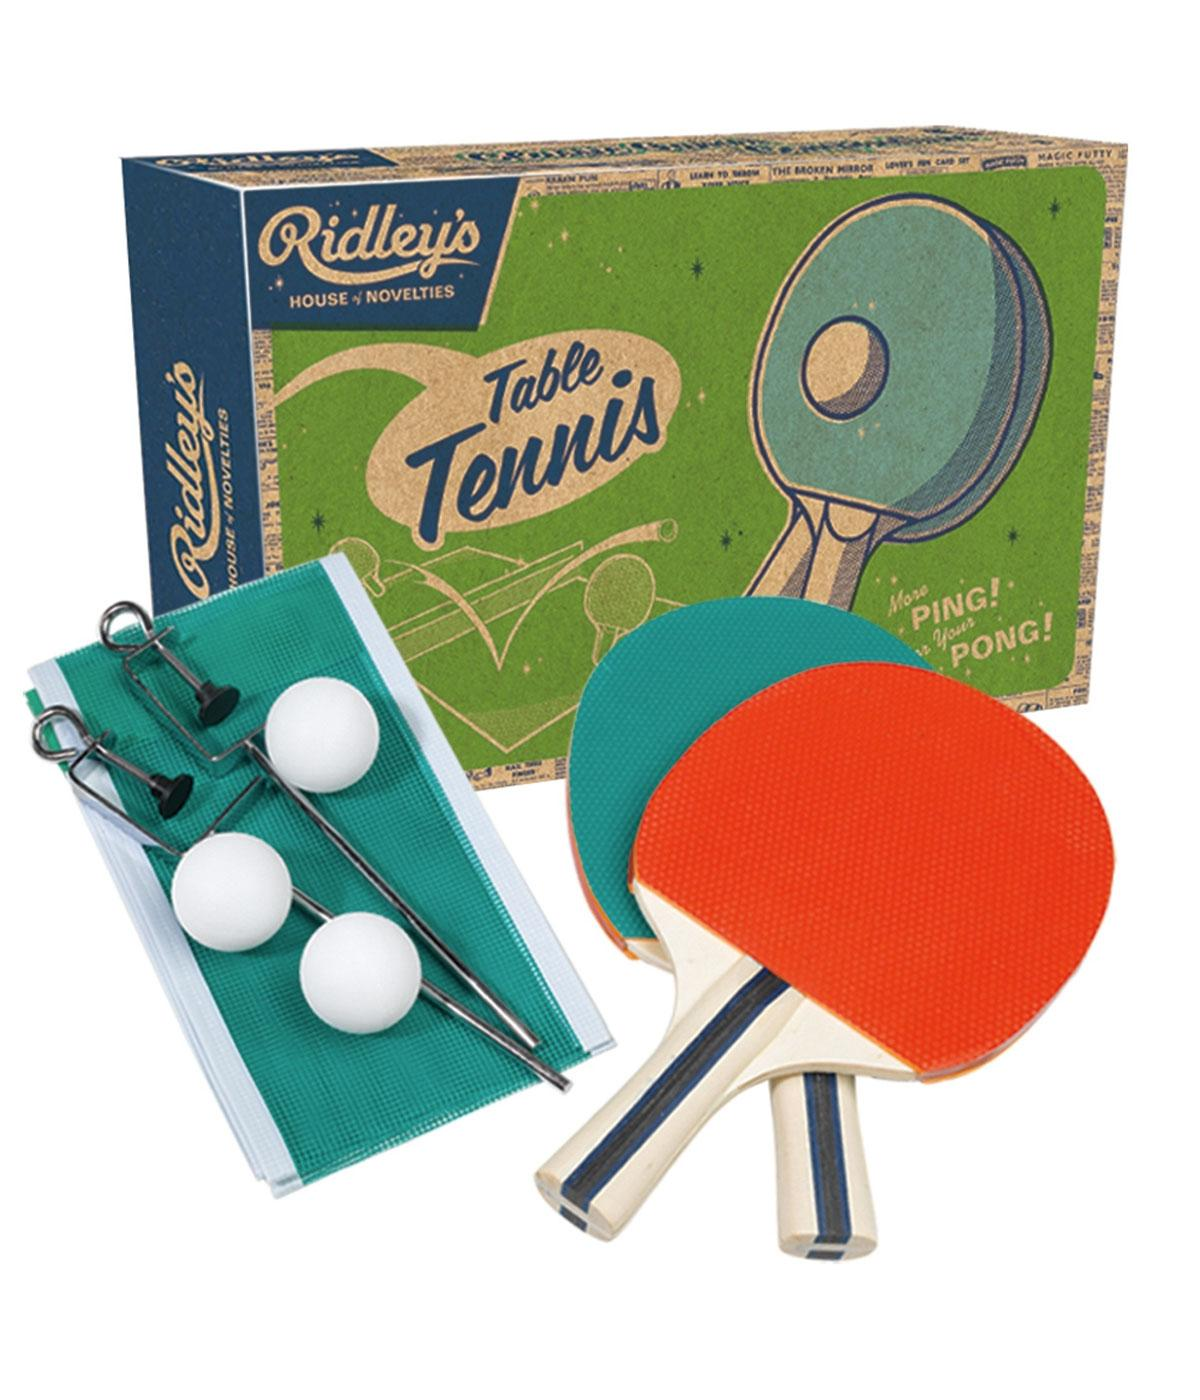 Table Tennis Ridley's Retro Vintage Ping Pong Set